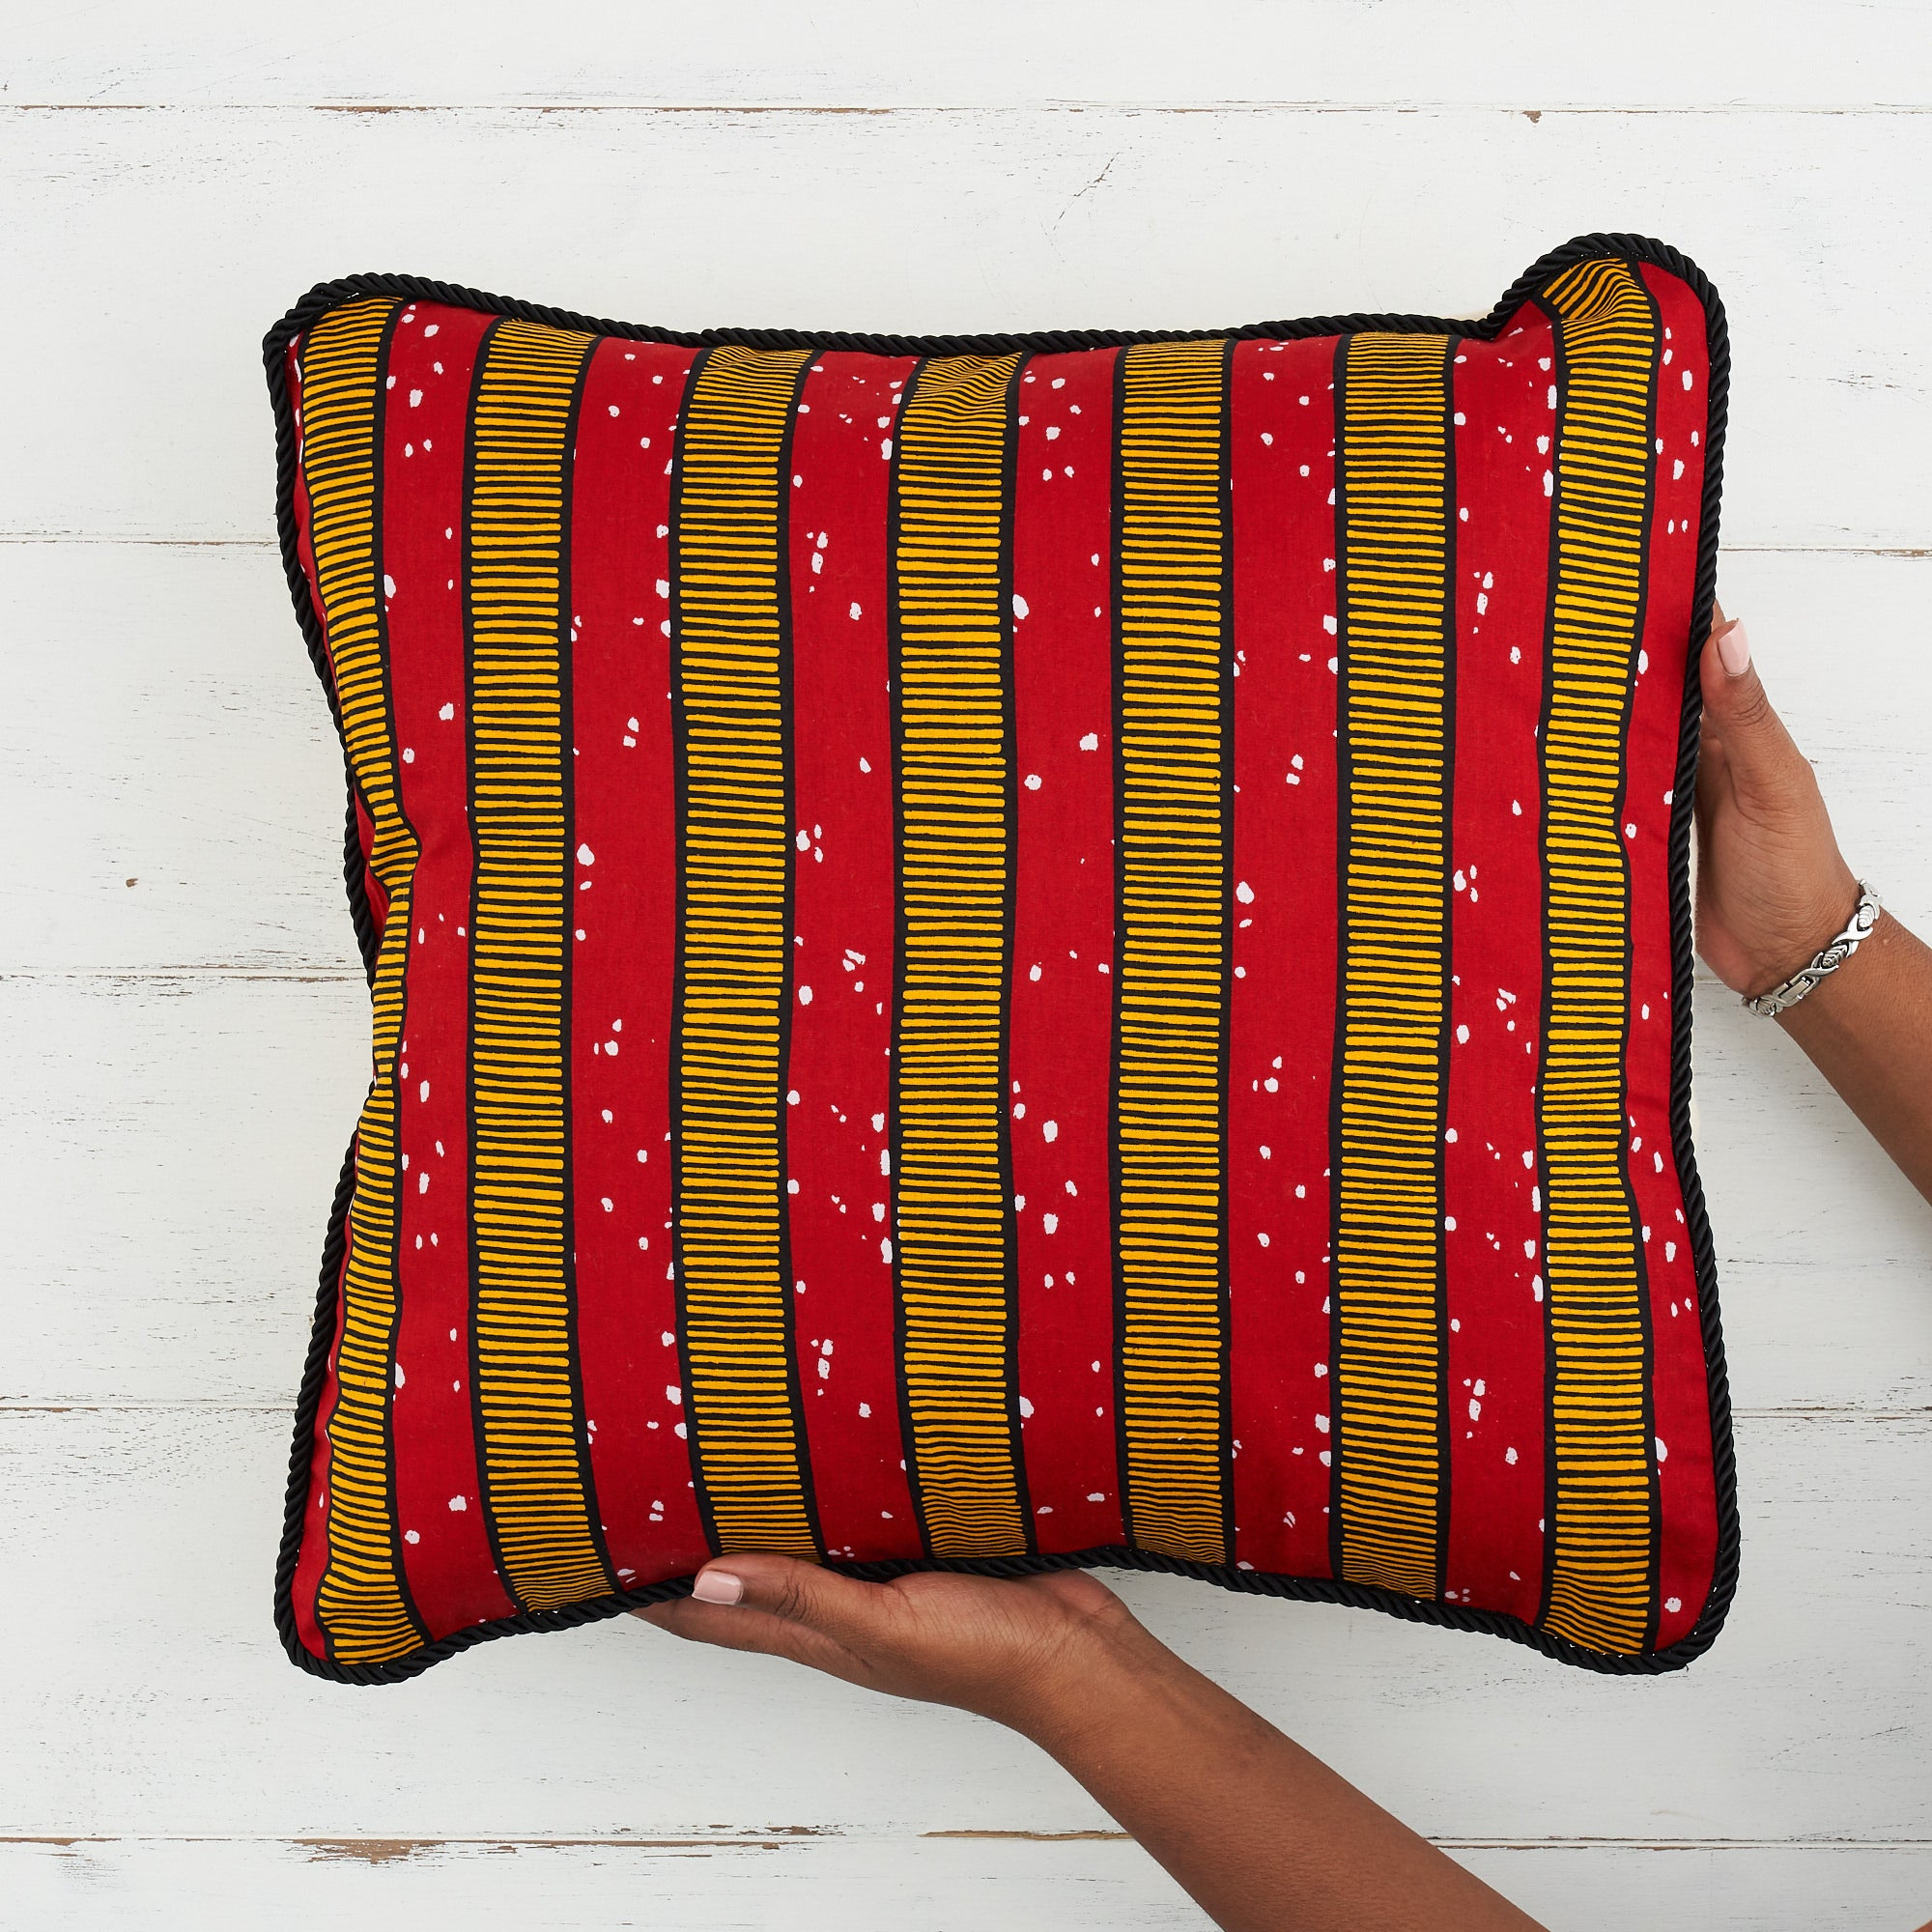 African Print Pillow - Red stripes - Bespoke Binny